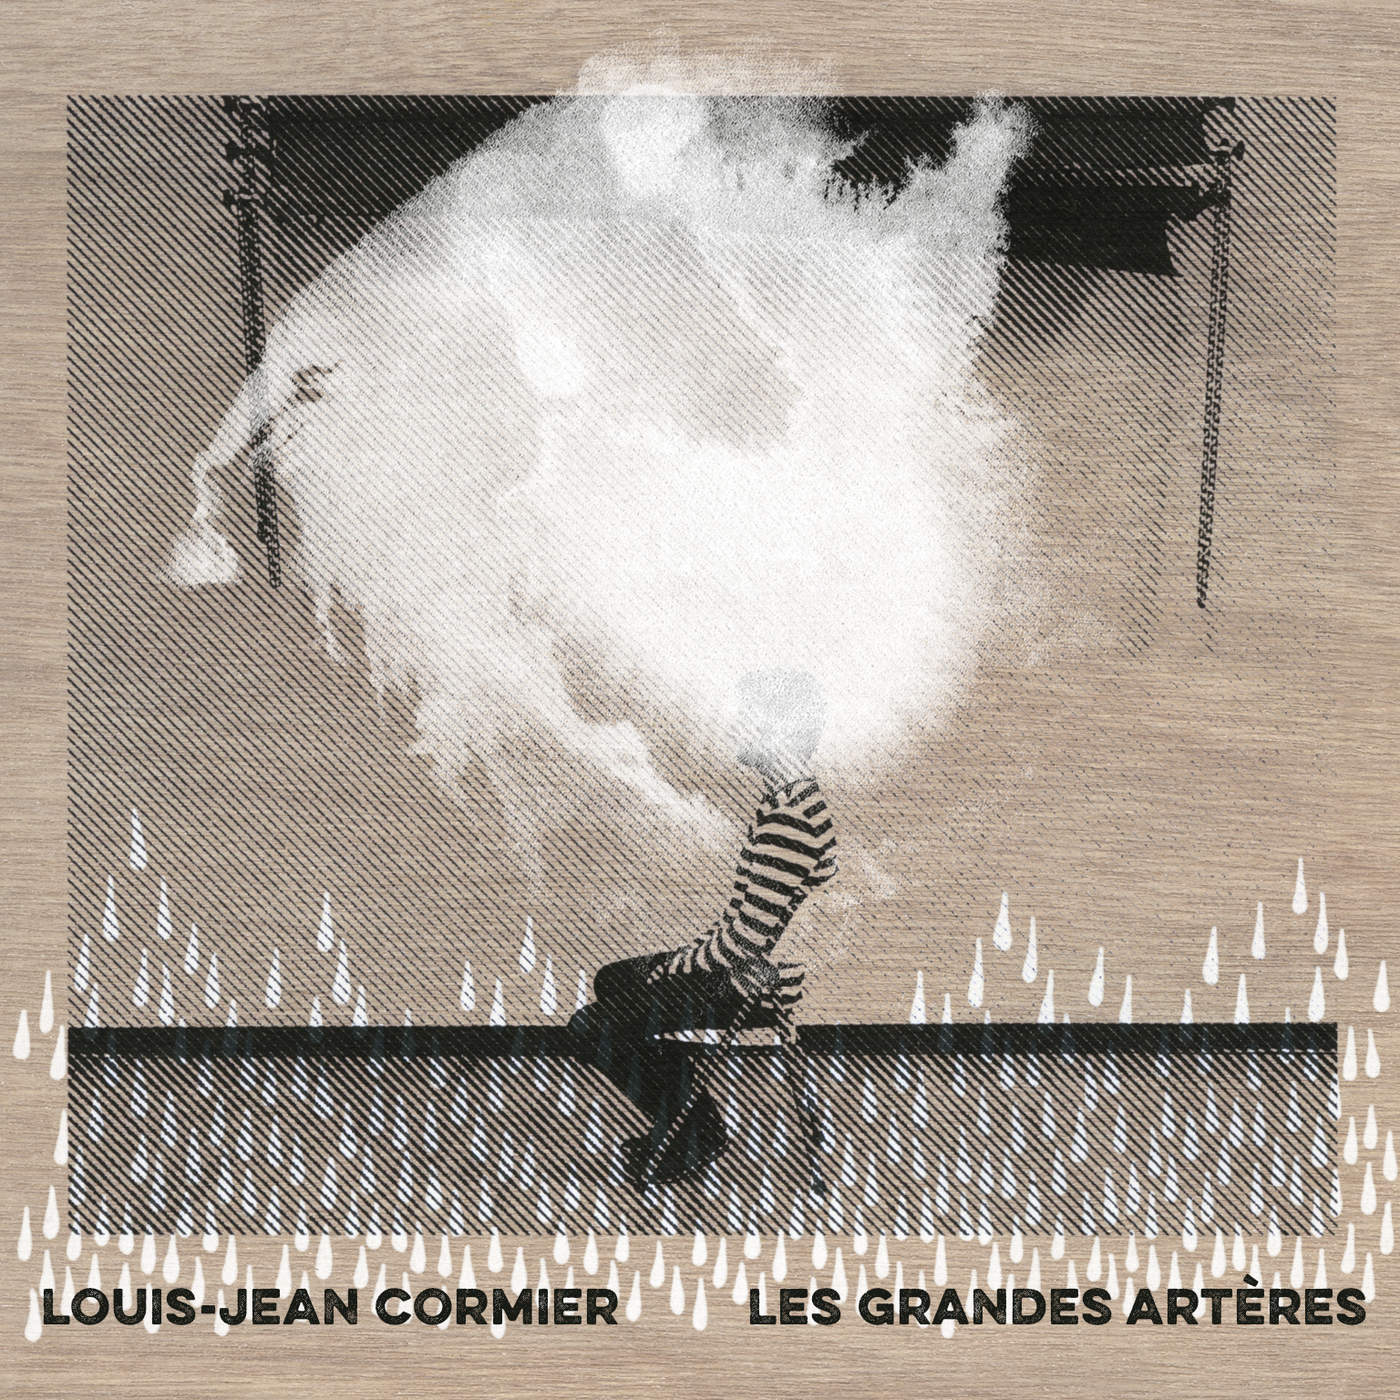 Louis jean Cormier album Les grandes artères interview Karkwa United States Of Paris